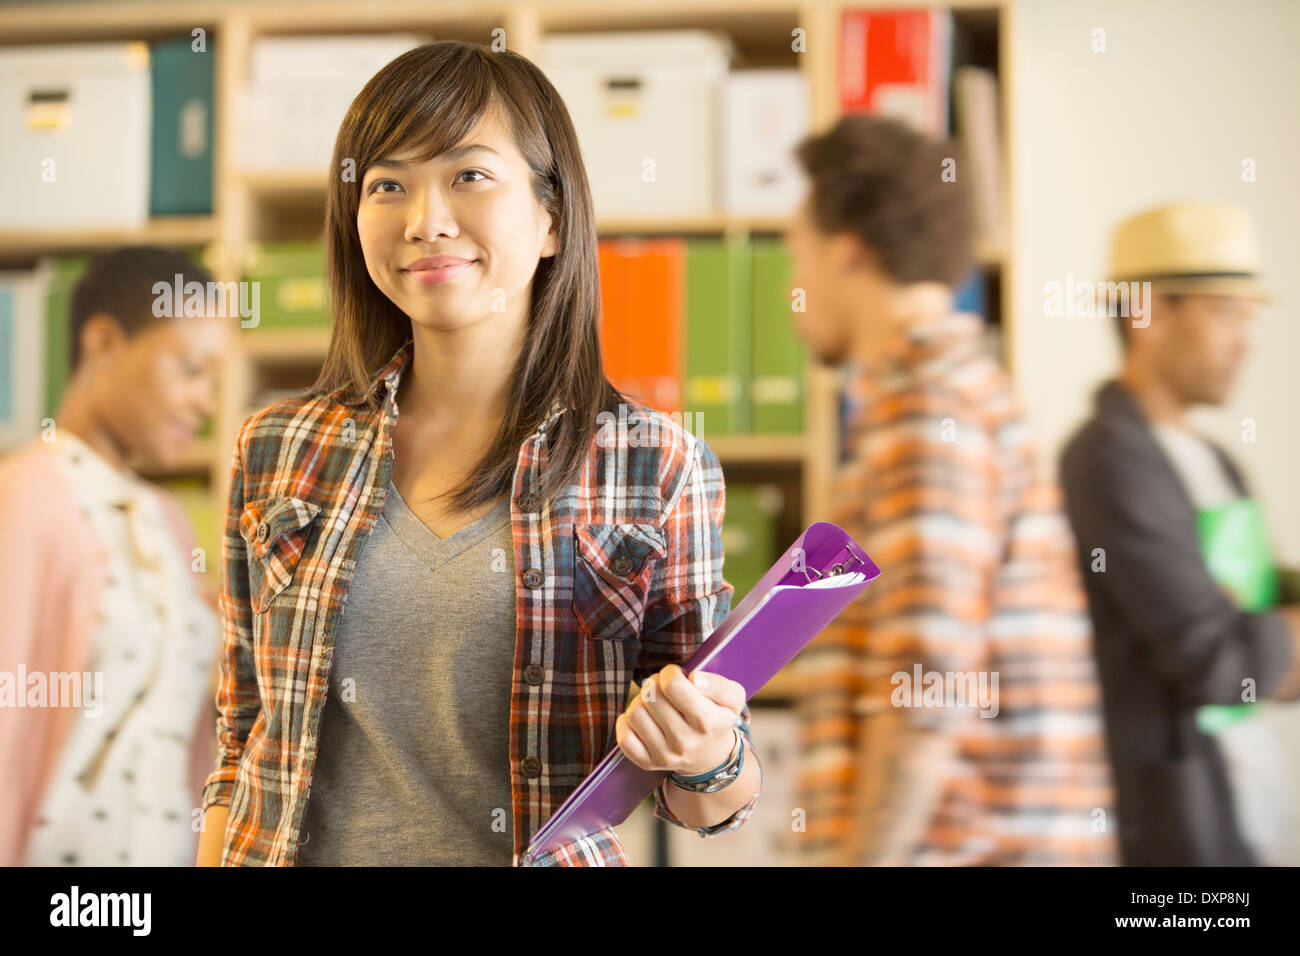 Portrait of confident casual businesswoman with co-workers passing in background - Stock Image